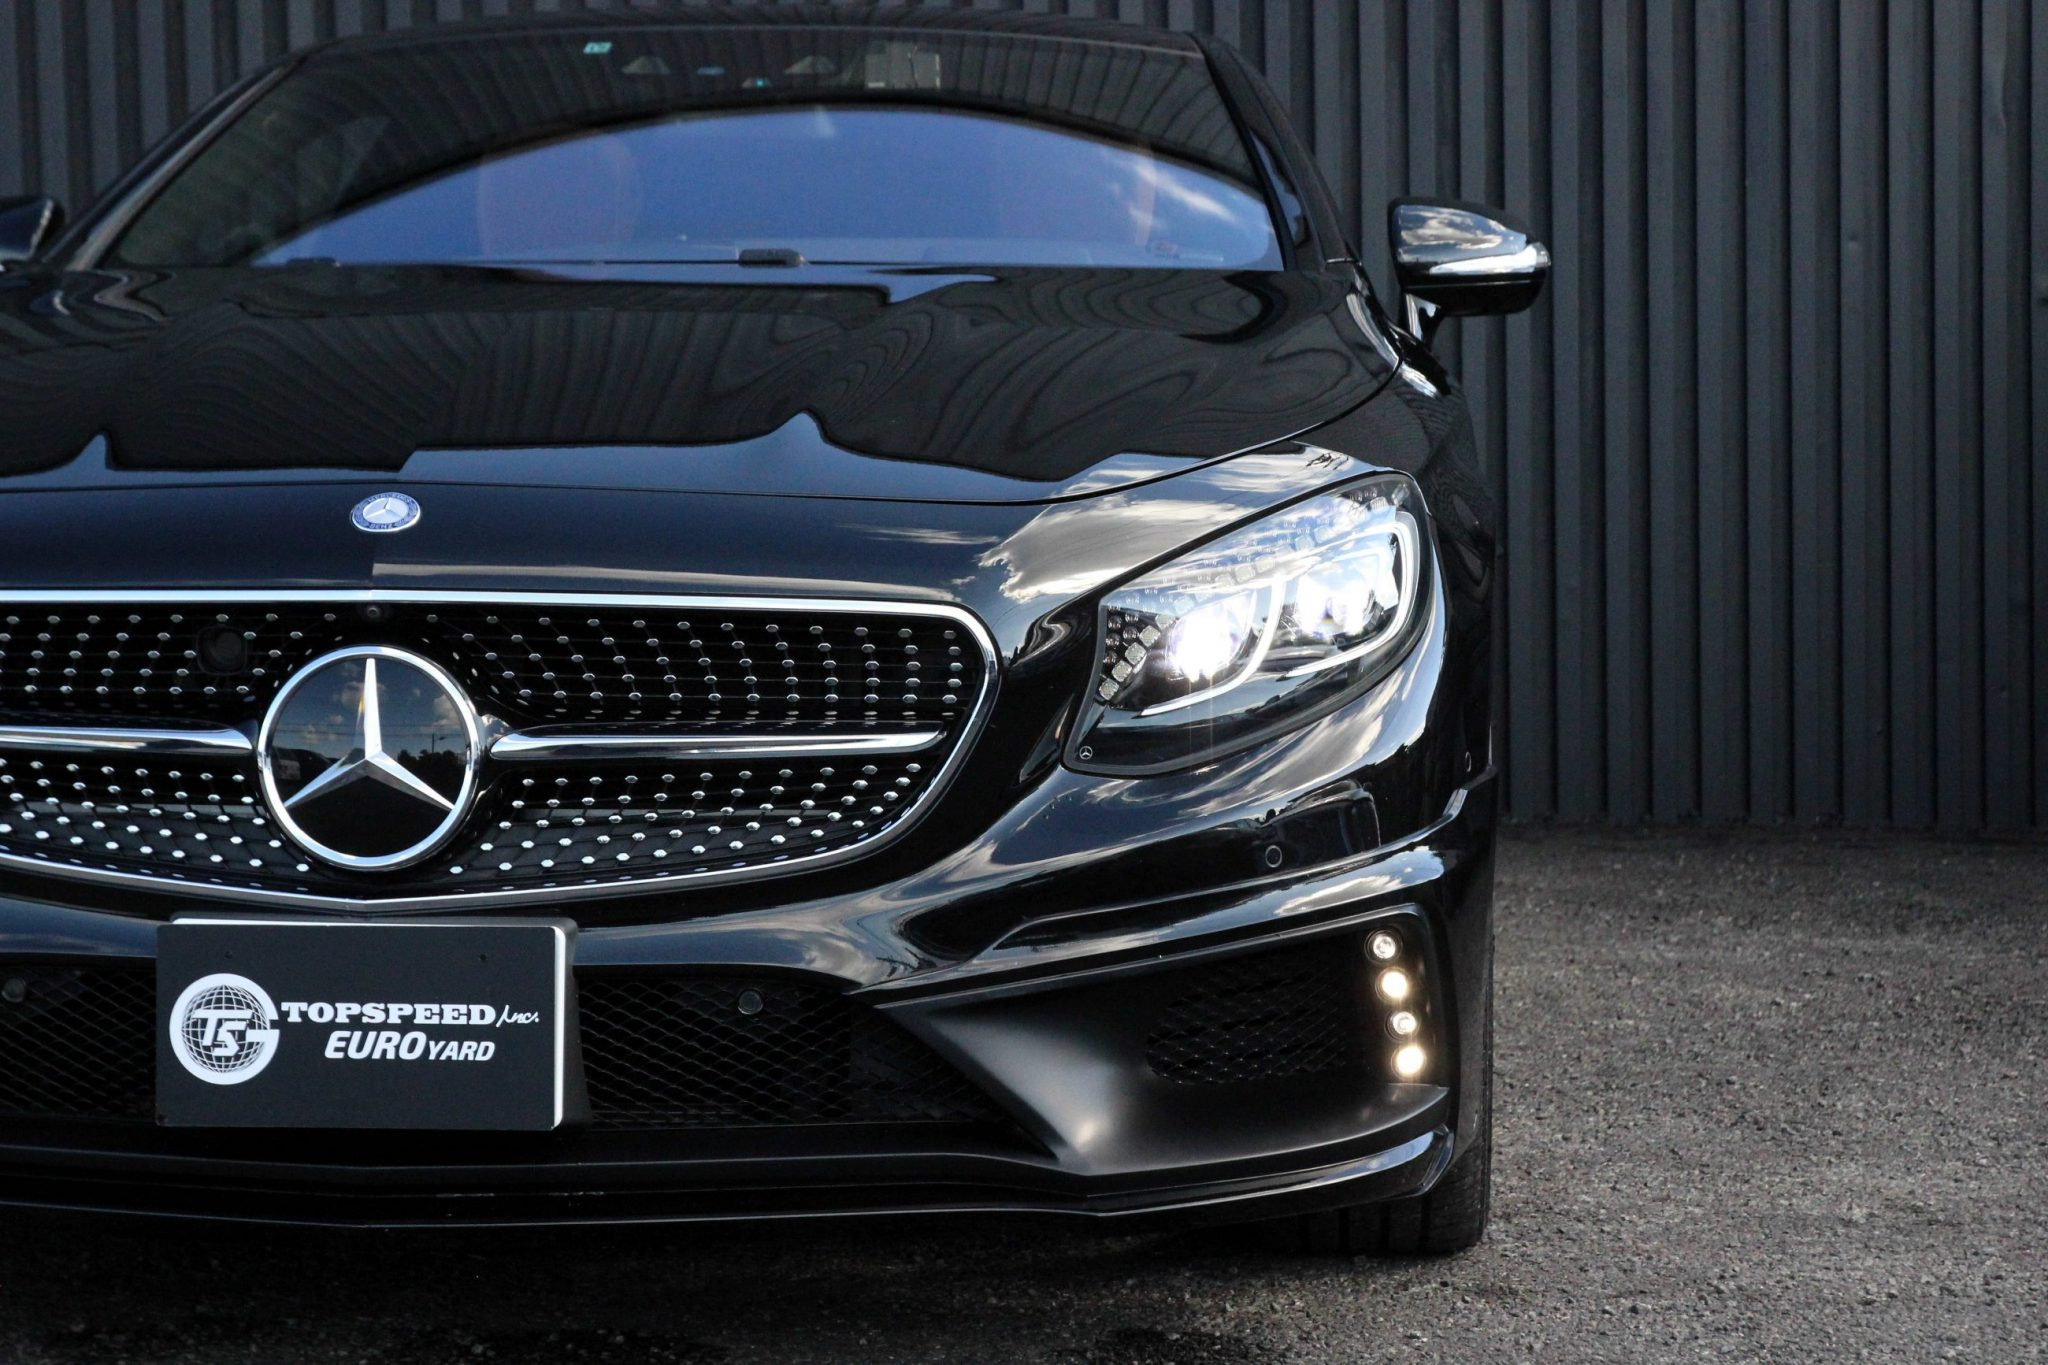 M.benz Sclass coupe